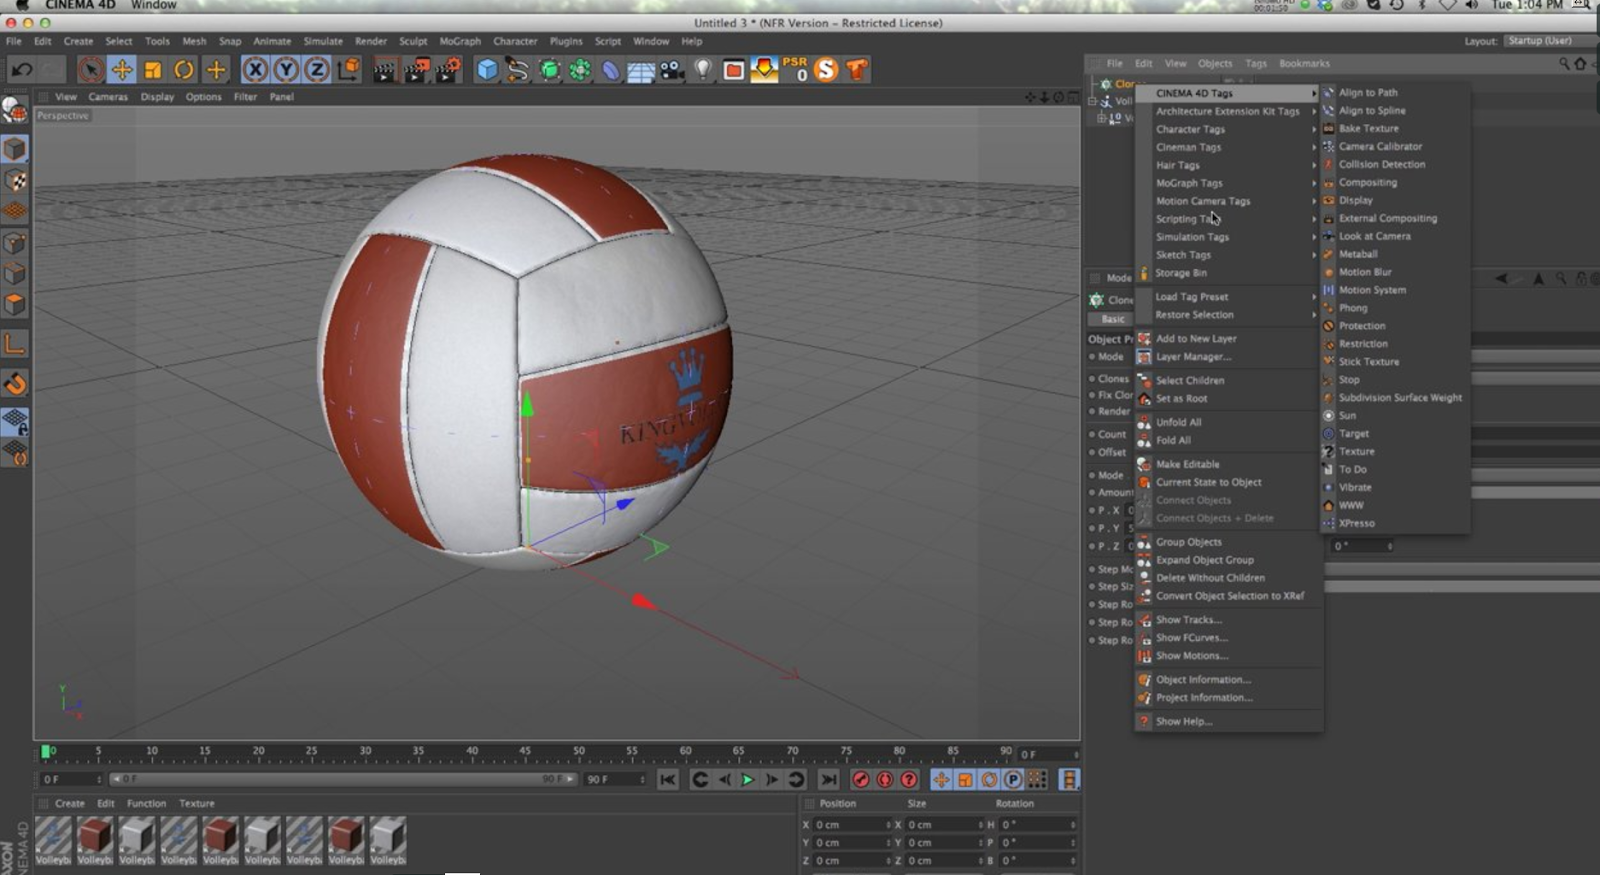 Xrefs and Proxy in Cinema 4D | CG TUTORIAL